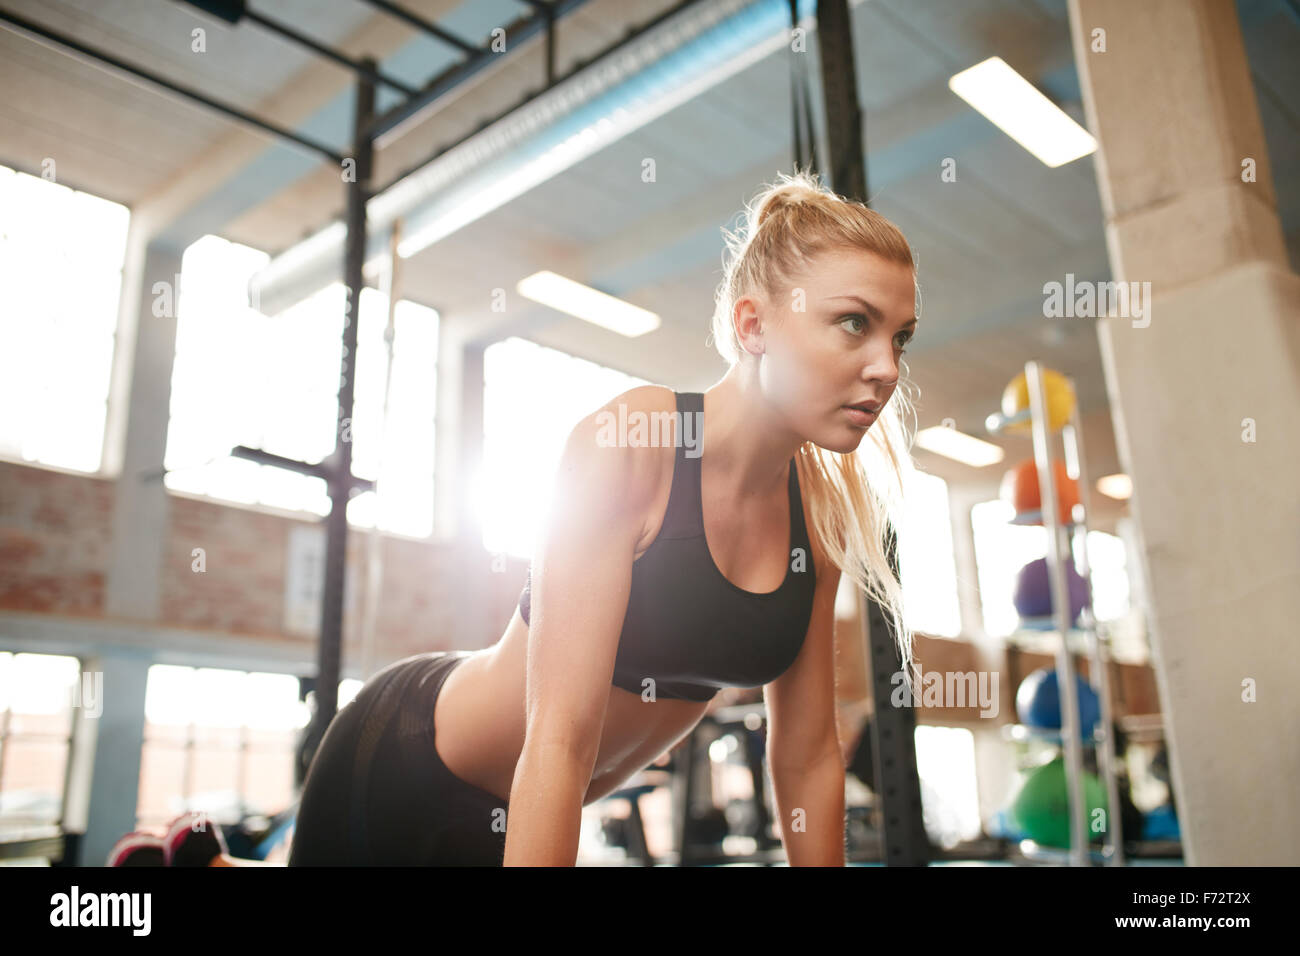 Indoor shot of young fitness woman doing push ups in gym. Caucasian female working out in health club. - Stock Image